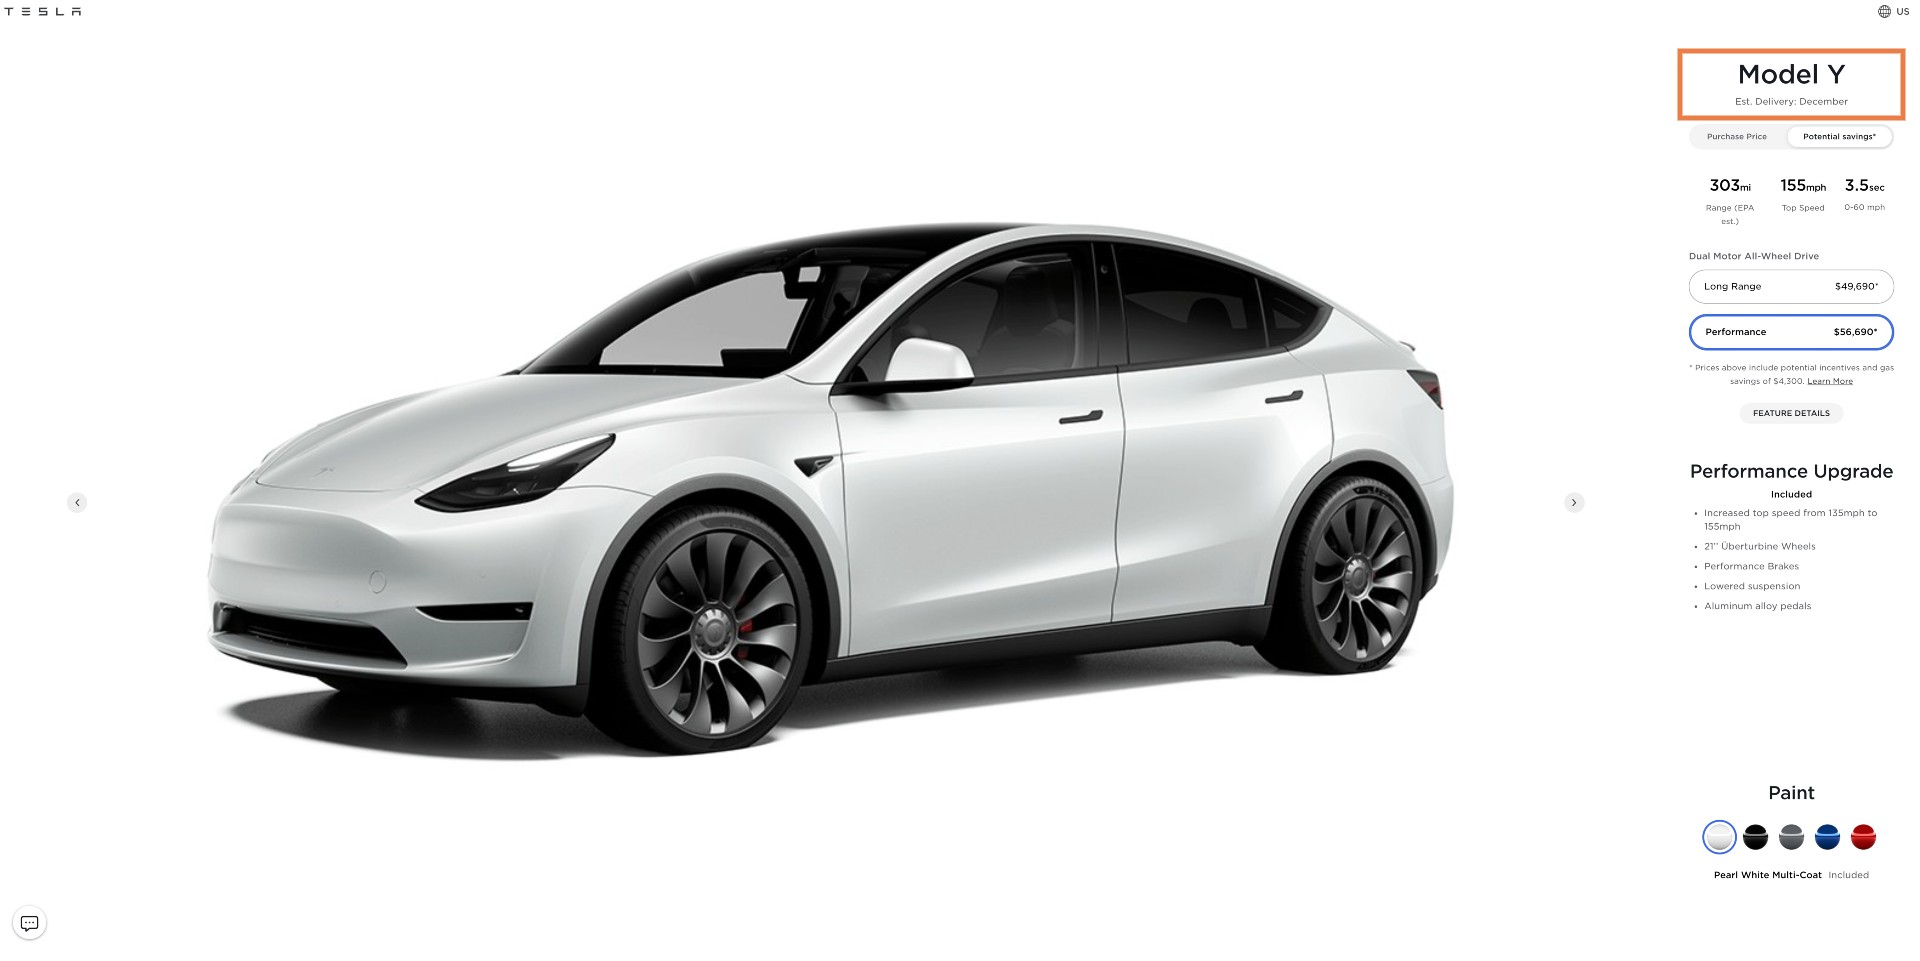 tesla-model-y-performance-sell-out